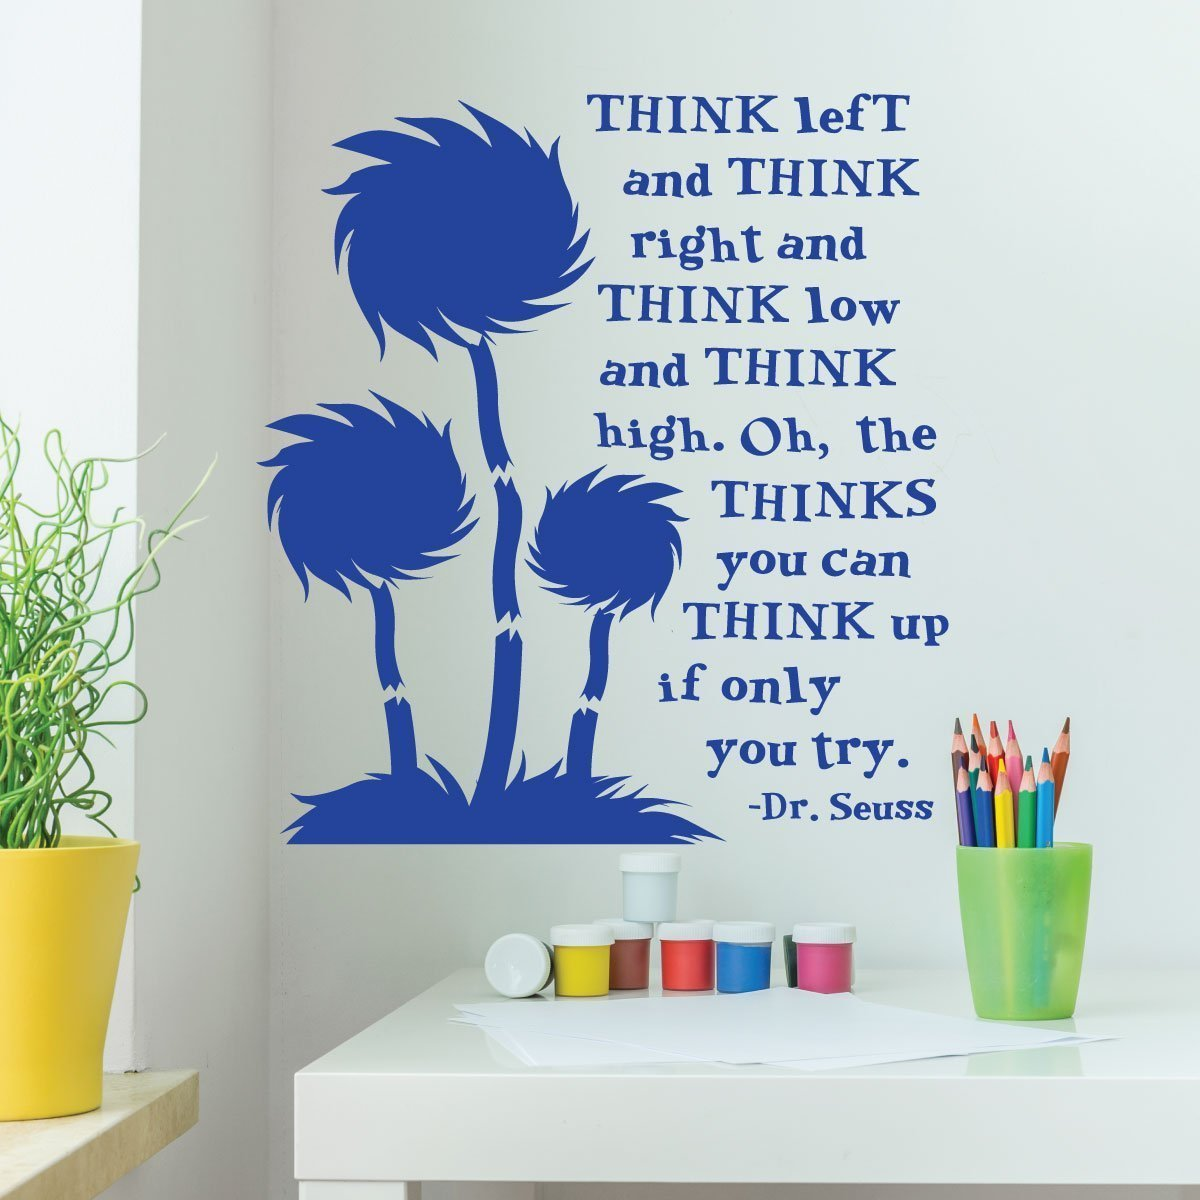 Dr Seuss Wall Decor For Clrooms Think Left And Right Low High Playroom Child Bedroom Nursery Party Decoration